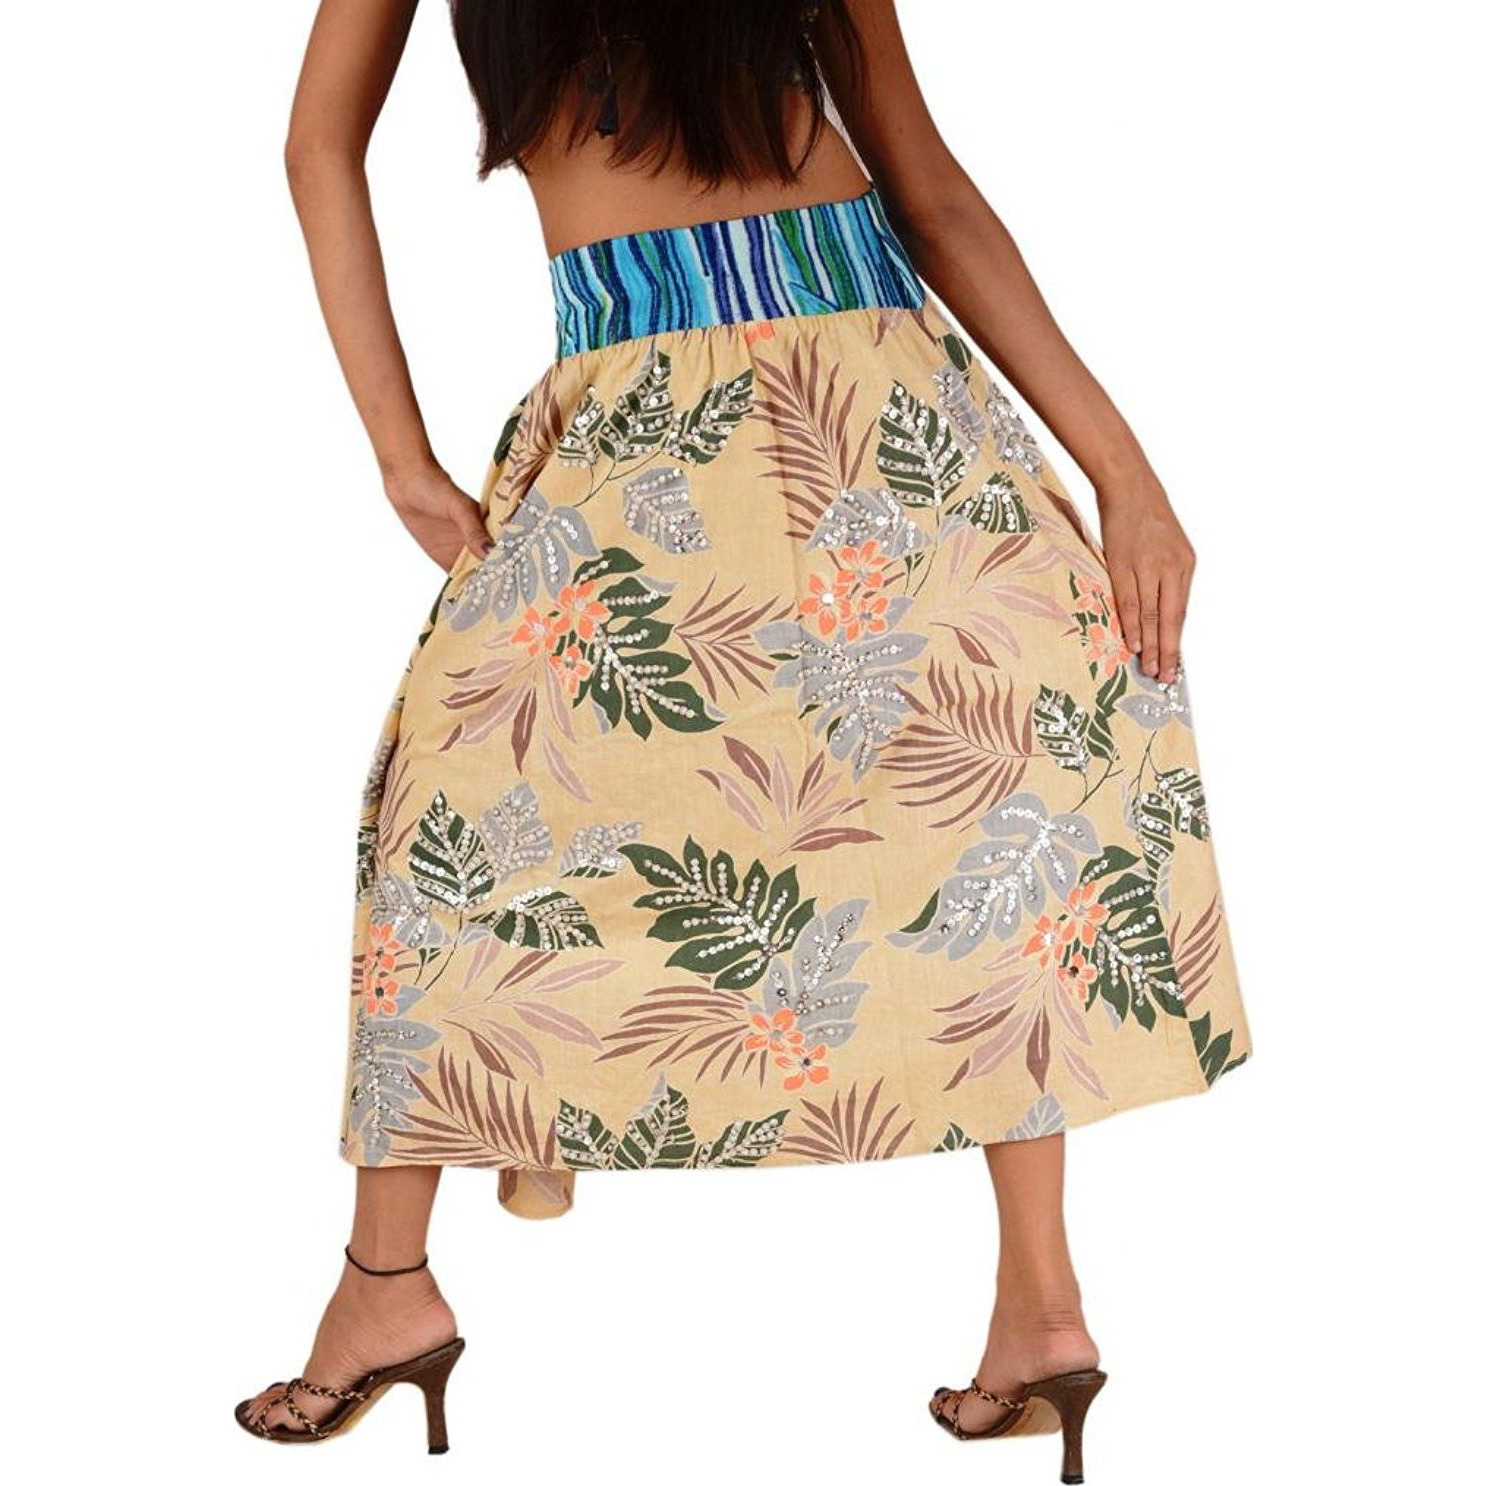 Women New Long Skirt Cotton Printed Maxi Elastic Floral Design Cream